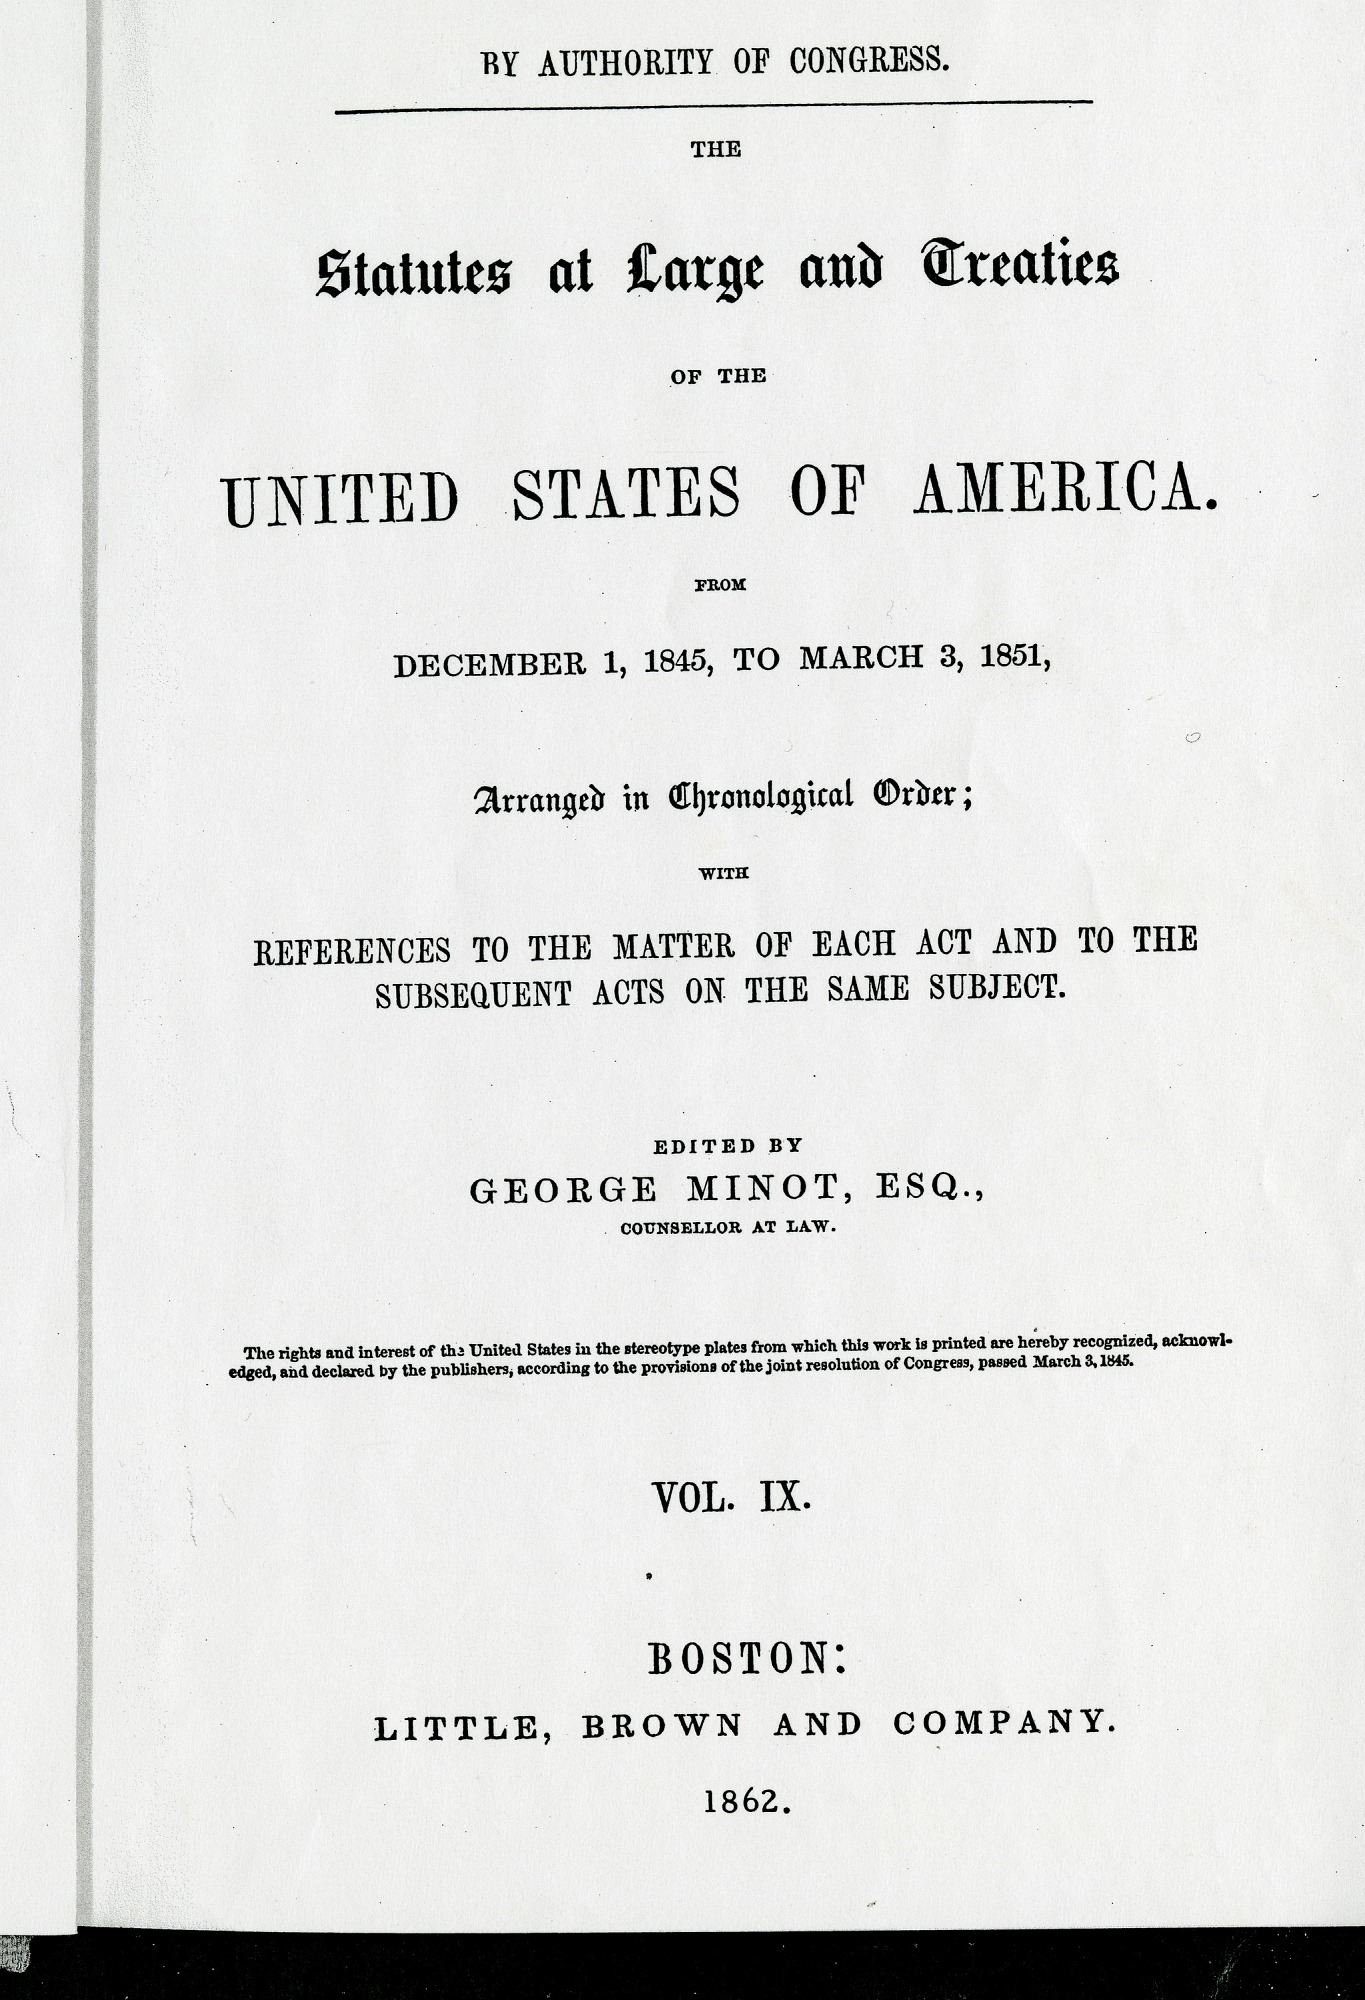 Cover to 1862 Statutes at Large, 1862, Smithsonian Archives - History Div, SIA2011-2253.